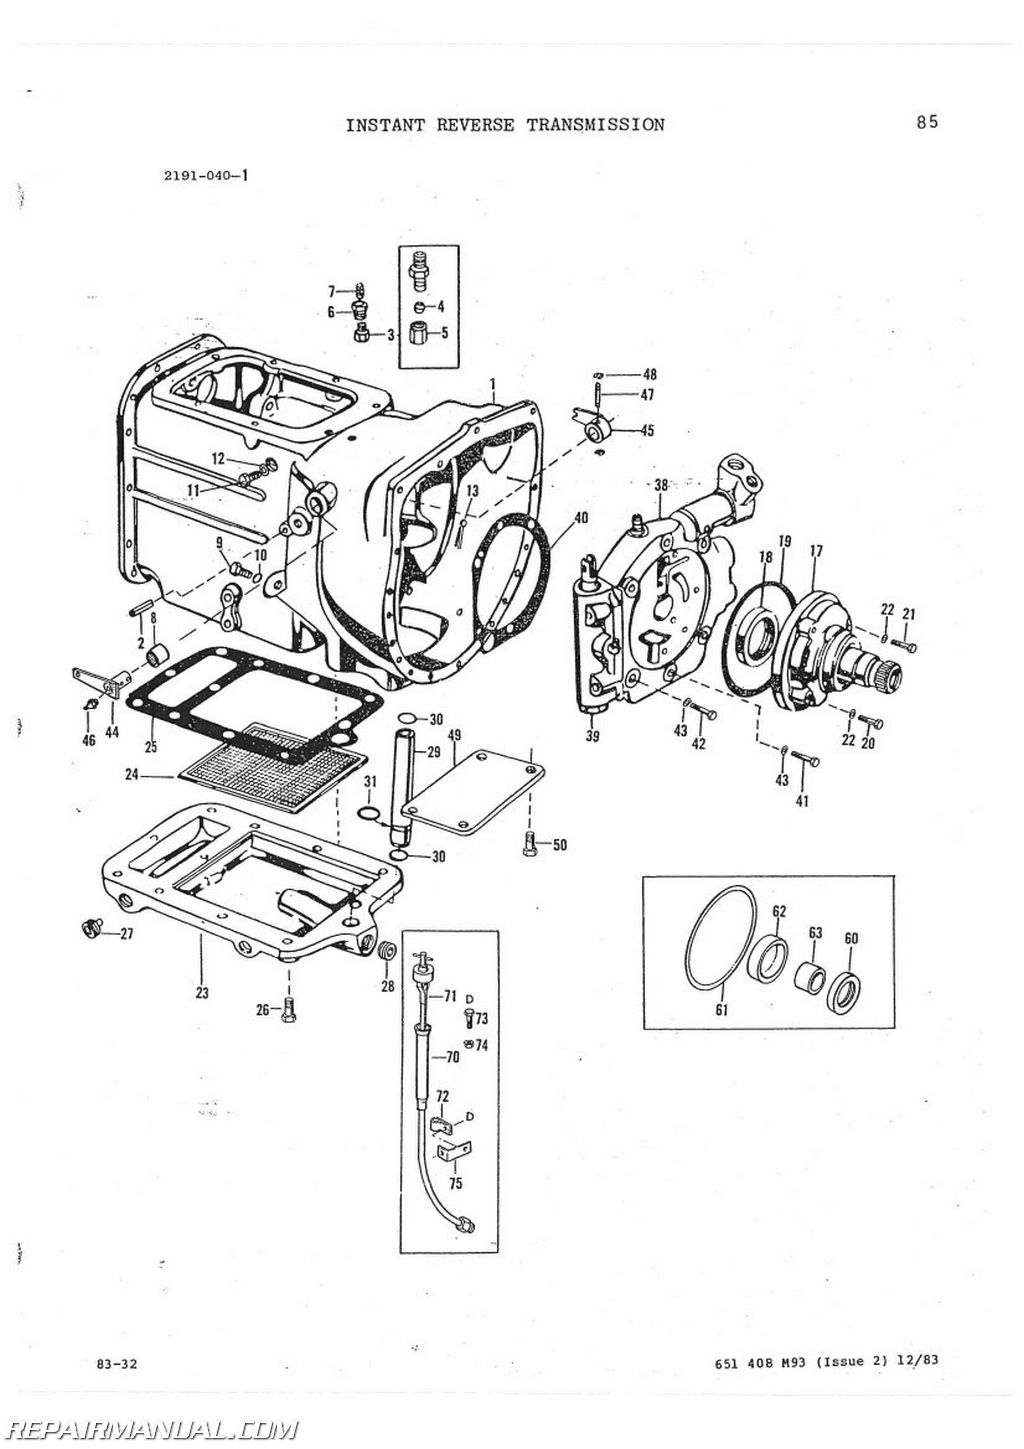 john deere c214g wiring diagram massey ferguson mf60 tractor loader backhoe parts manual john deere 3010 wiring diagram